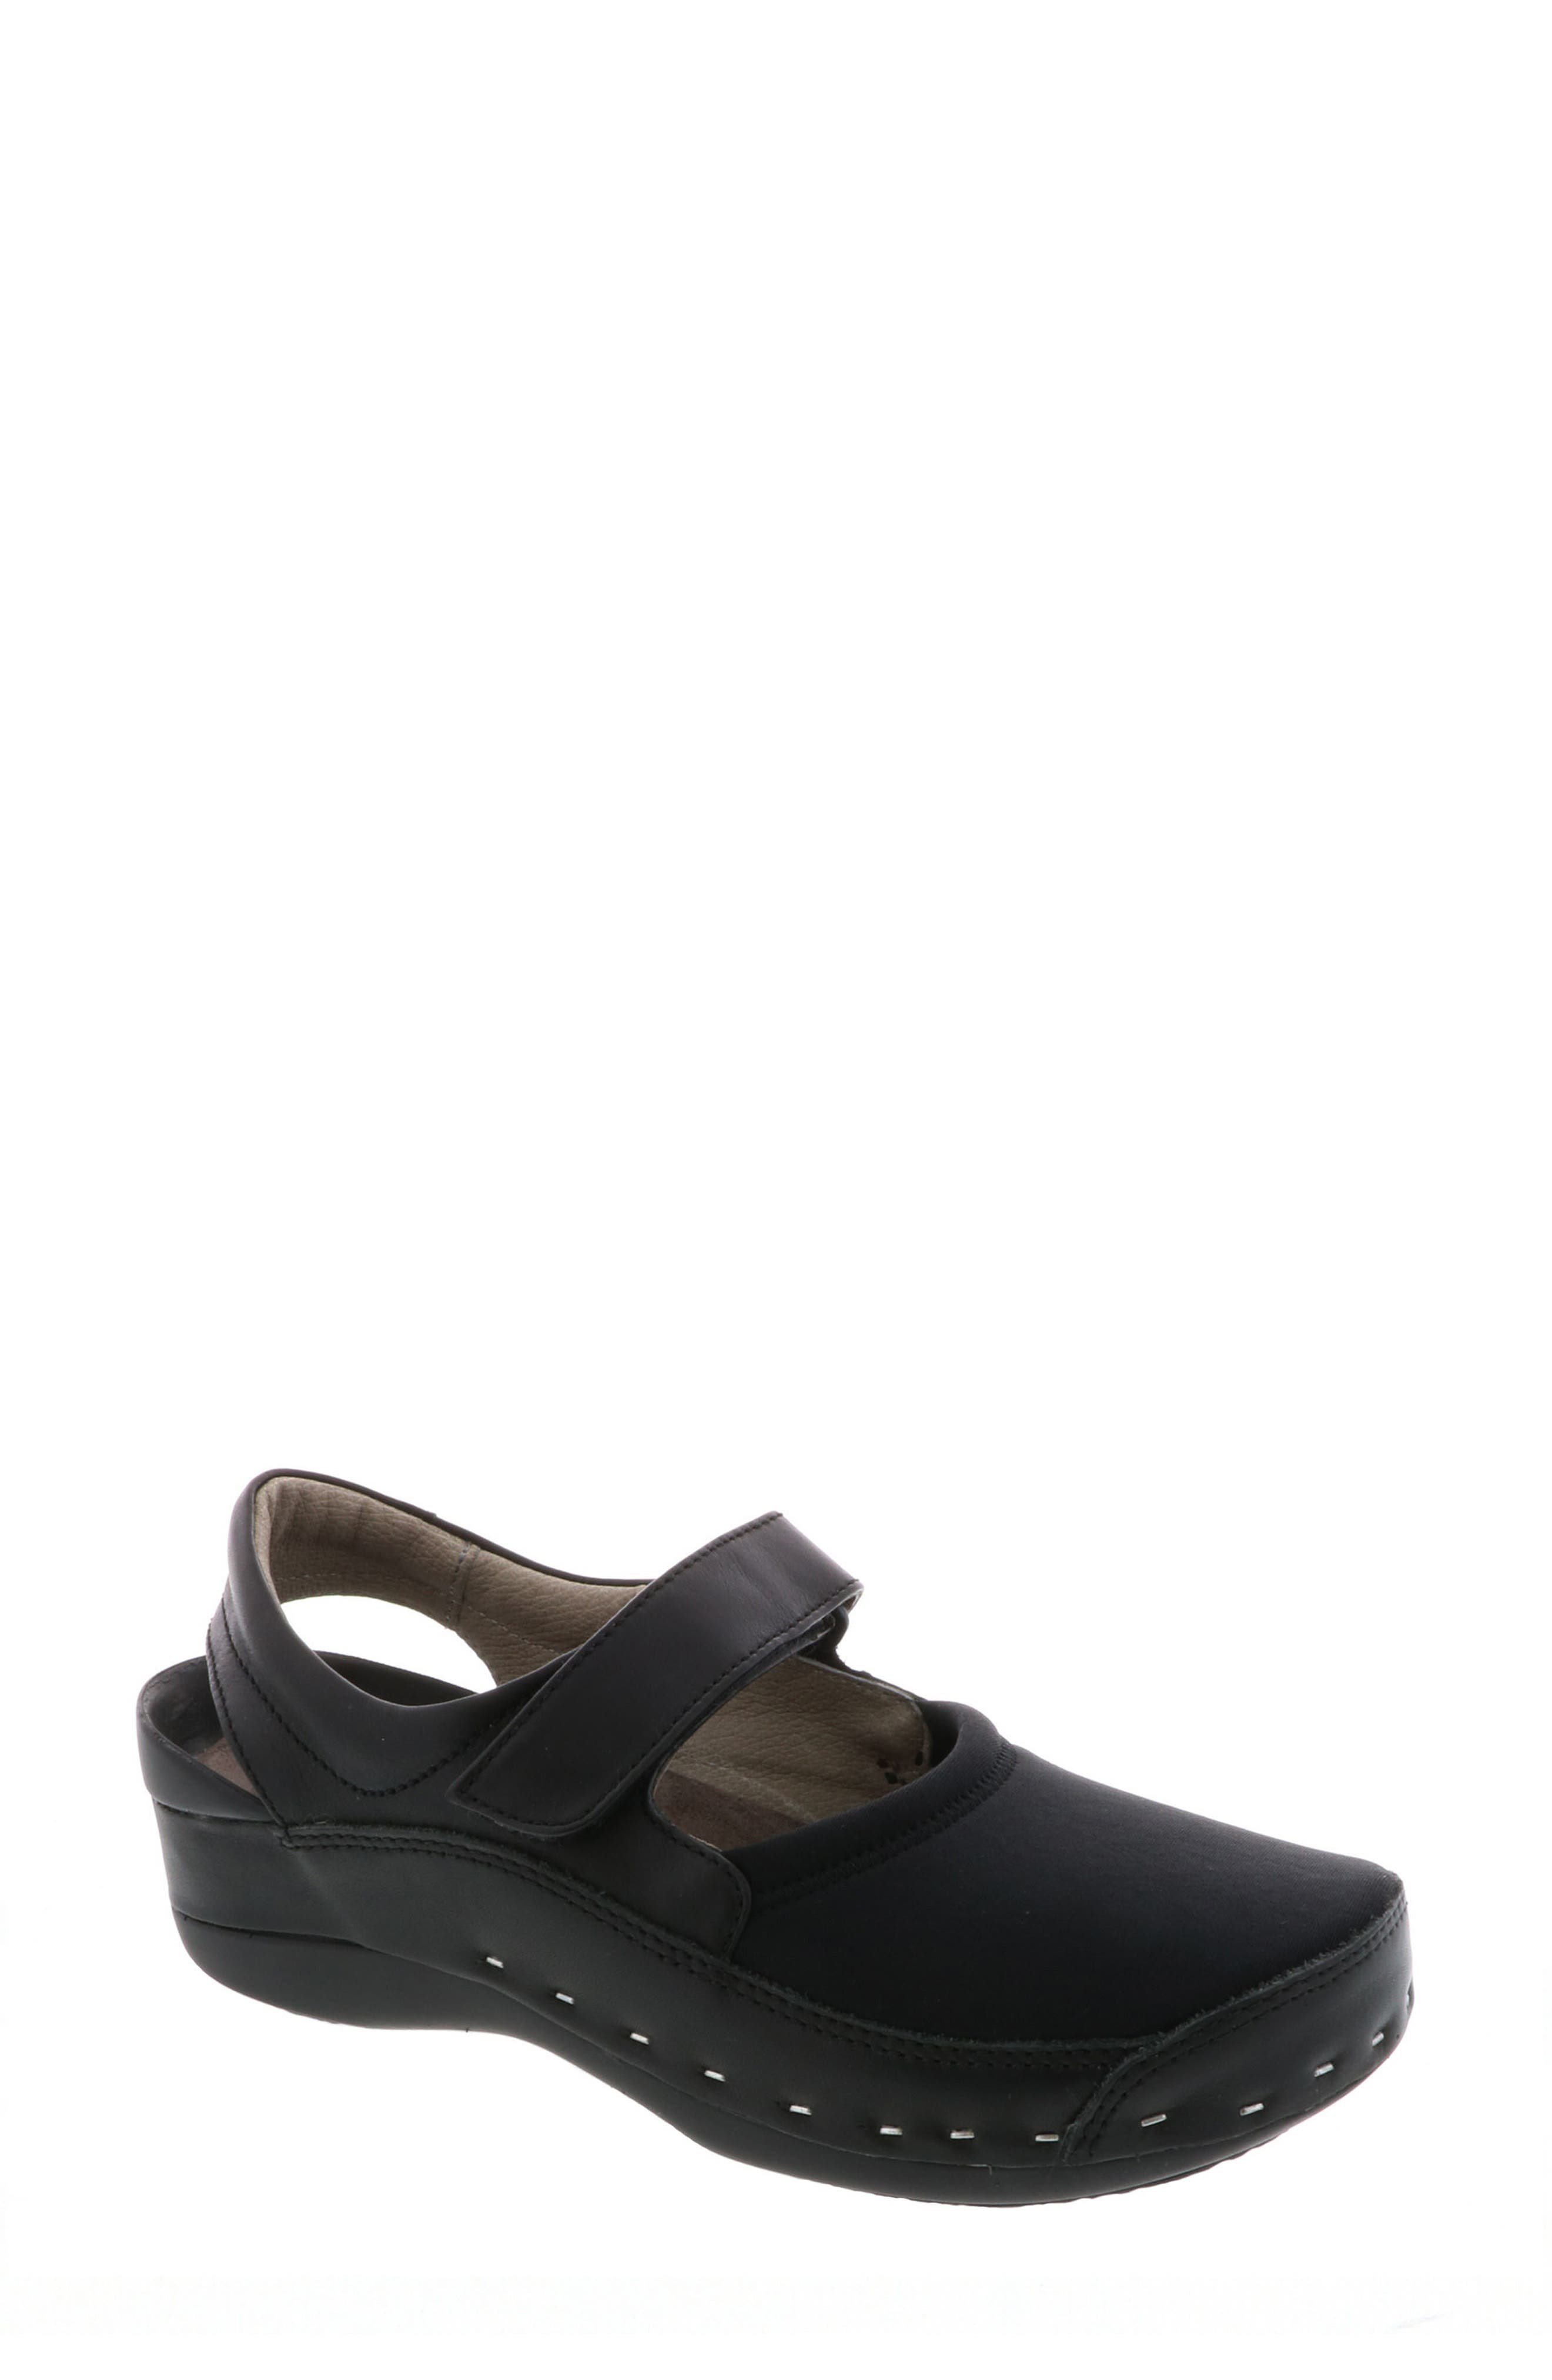 WOLKY Ankle Strap Clog, Main, color, BLACK LEATHER